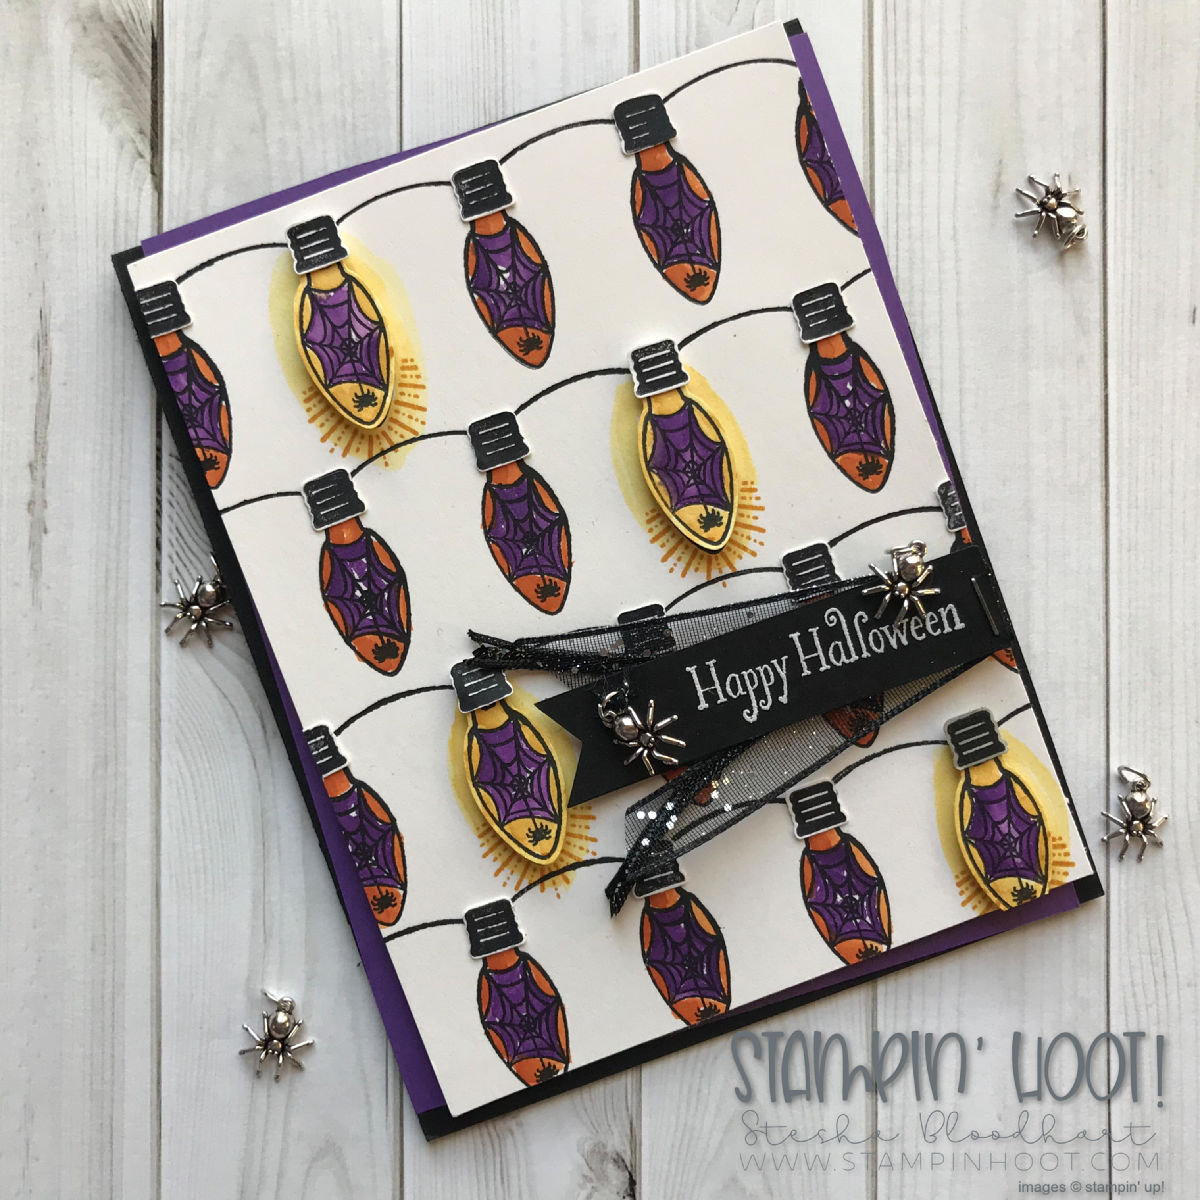 Making Every Day Bright & Christmas Bulb Builder Punch by Stampin' Up! Create Your Own Background Challenge TGIFC179. Card created by Stesha Bloodhart, Stampin' Hoot! #steshabloodhart #stampinhoot